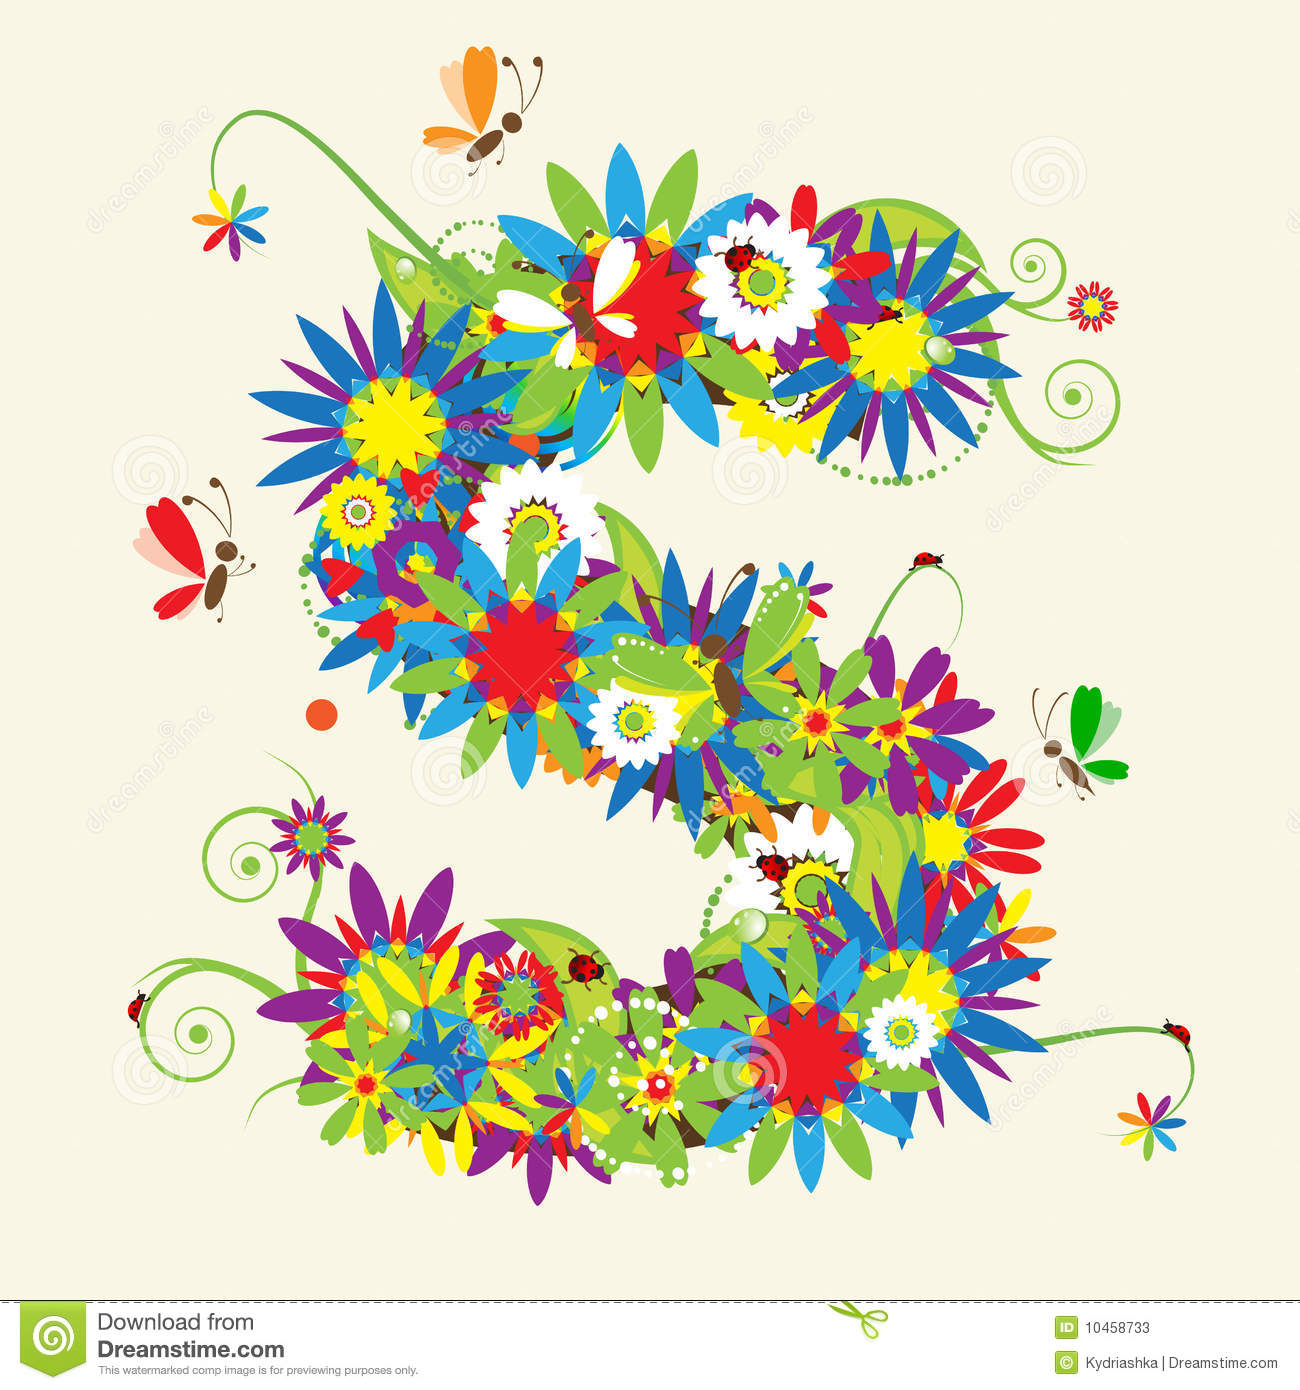 Stock Images Stock Footage Free Images Designers area Contributors ...: www.dreamstime.com/stock-photos-letter-s-floral-design-image10458733